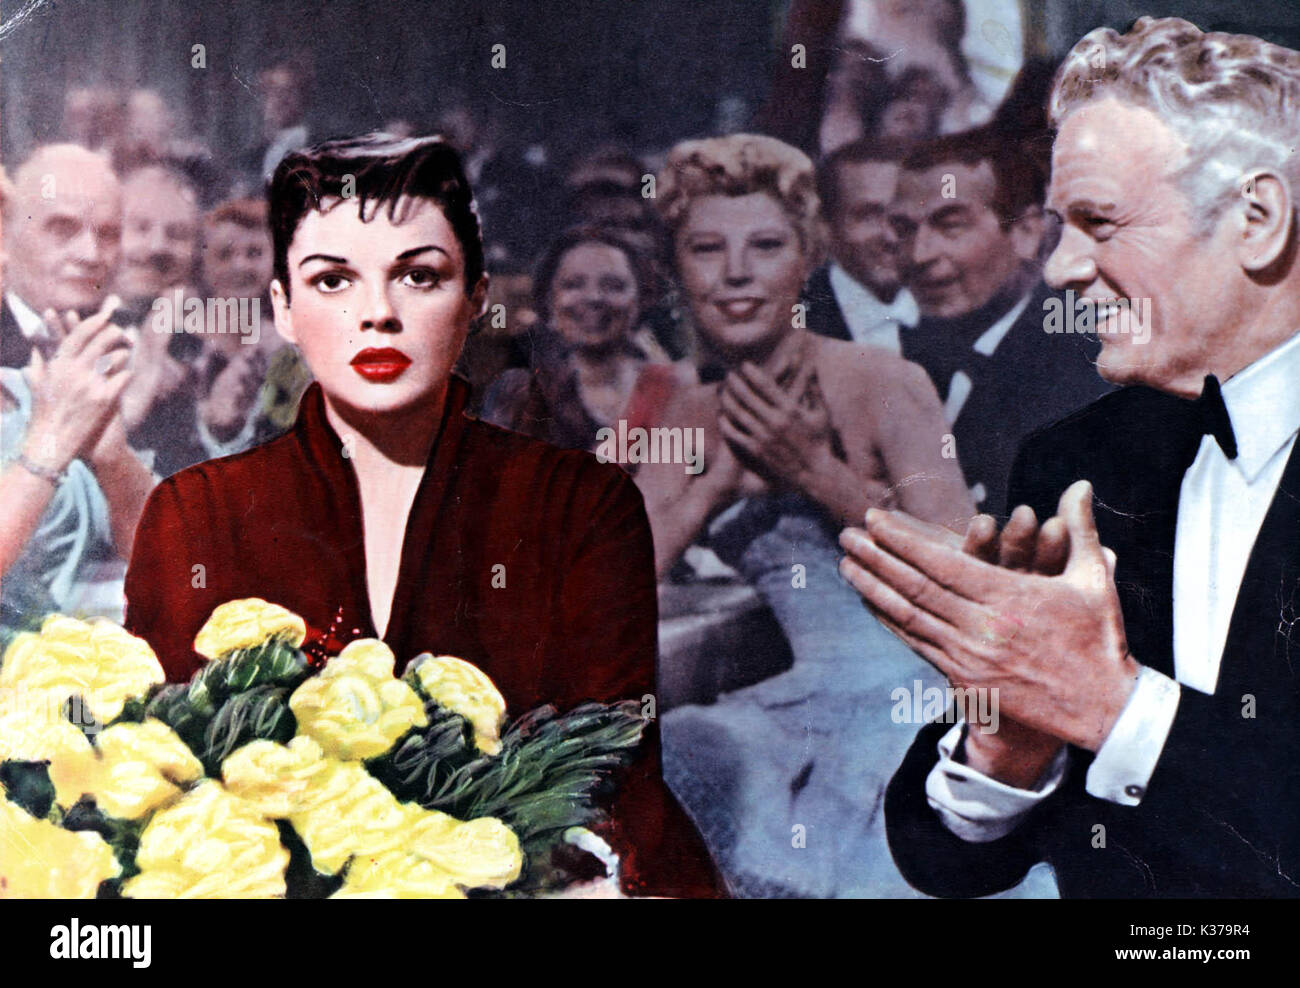 A Star Is Born Judy Garland And Charles Bickford Date 1954 Stock Photo Alamy